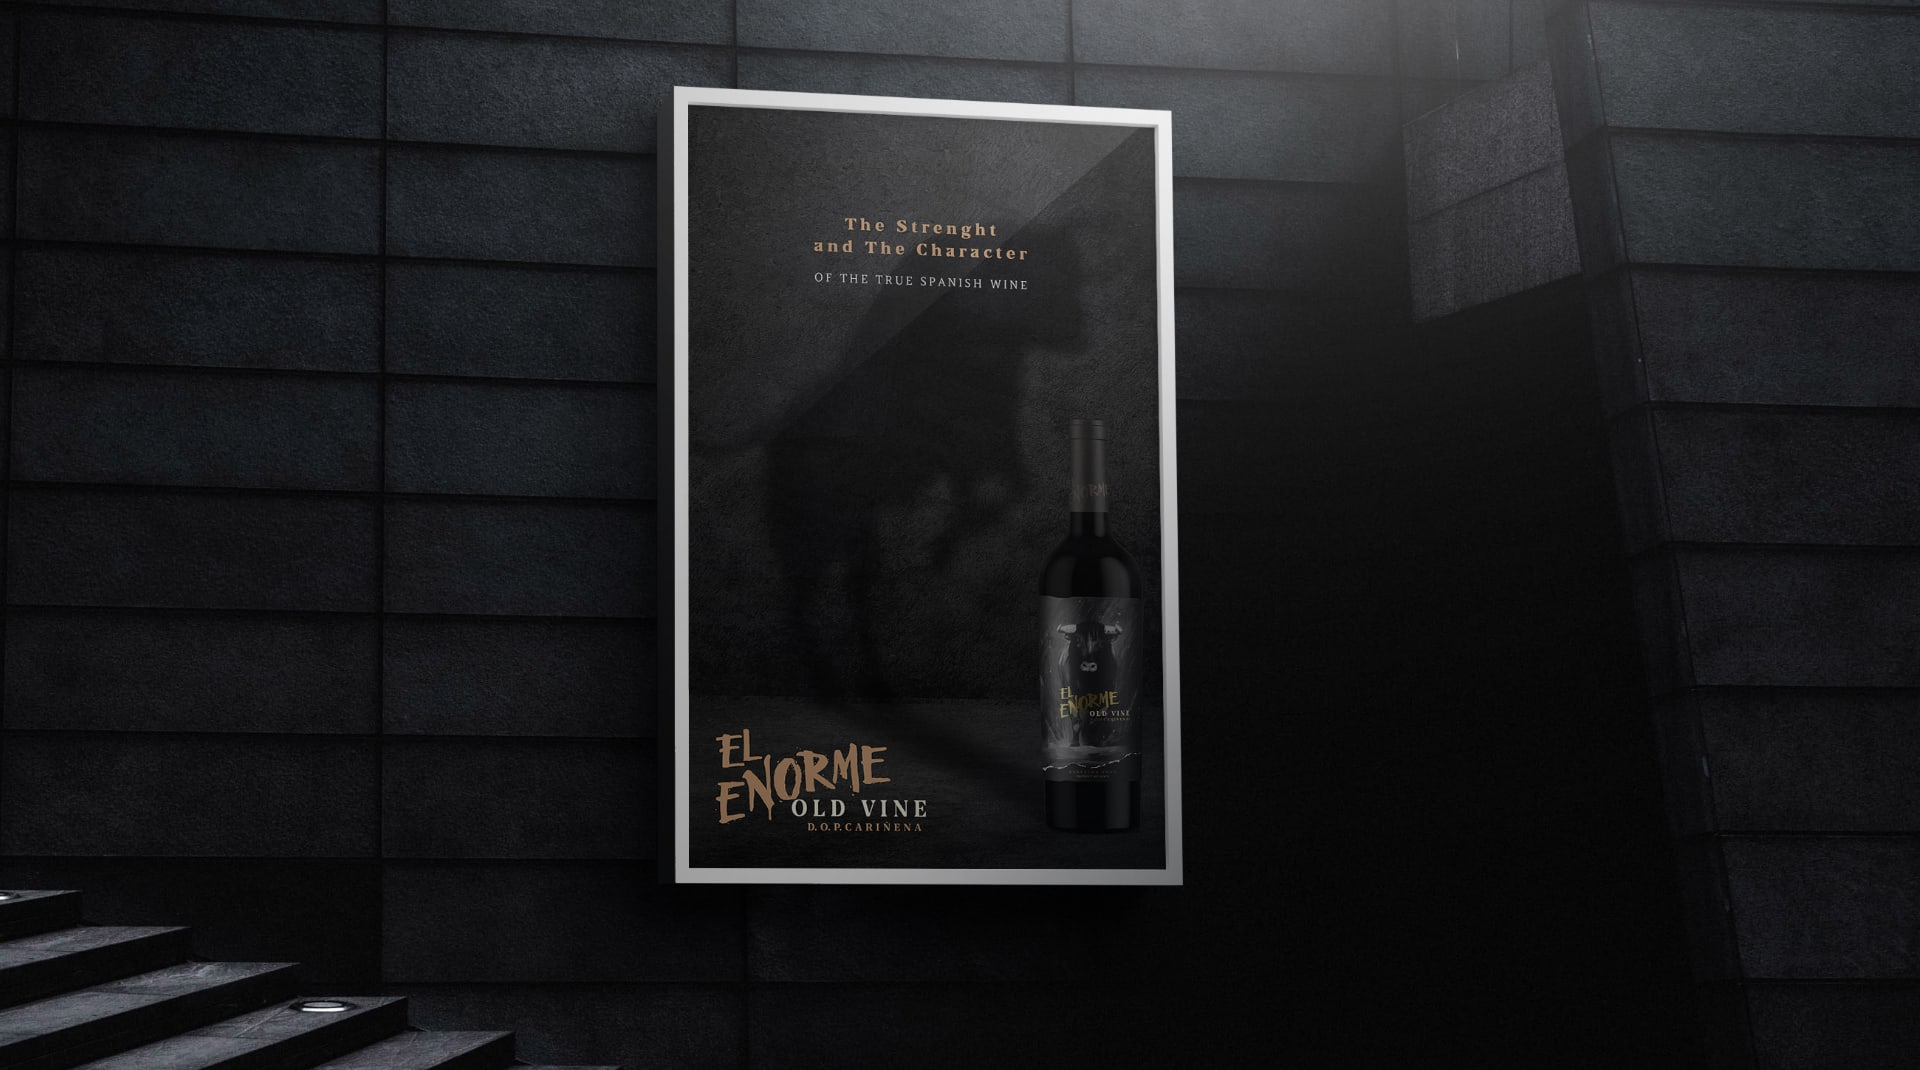 Enorme poster